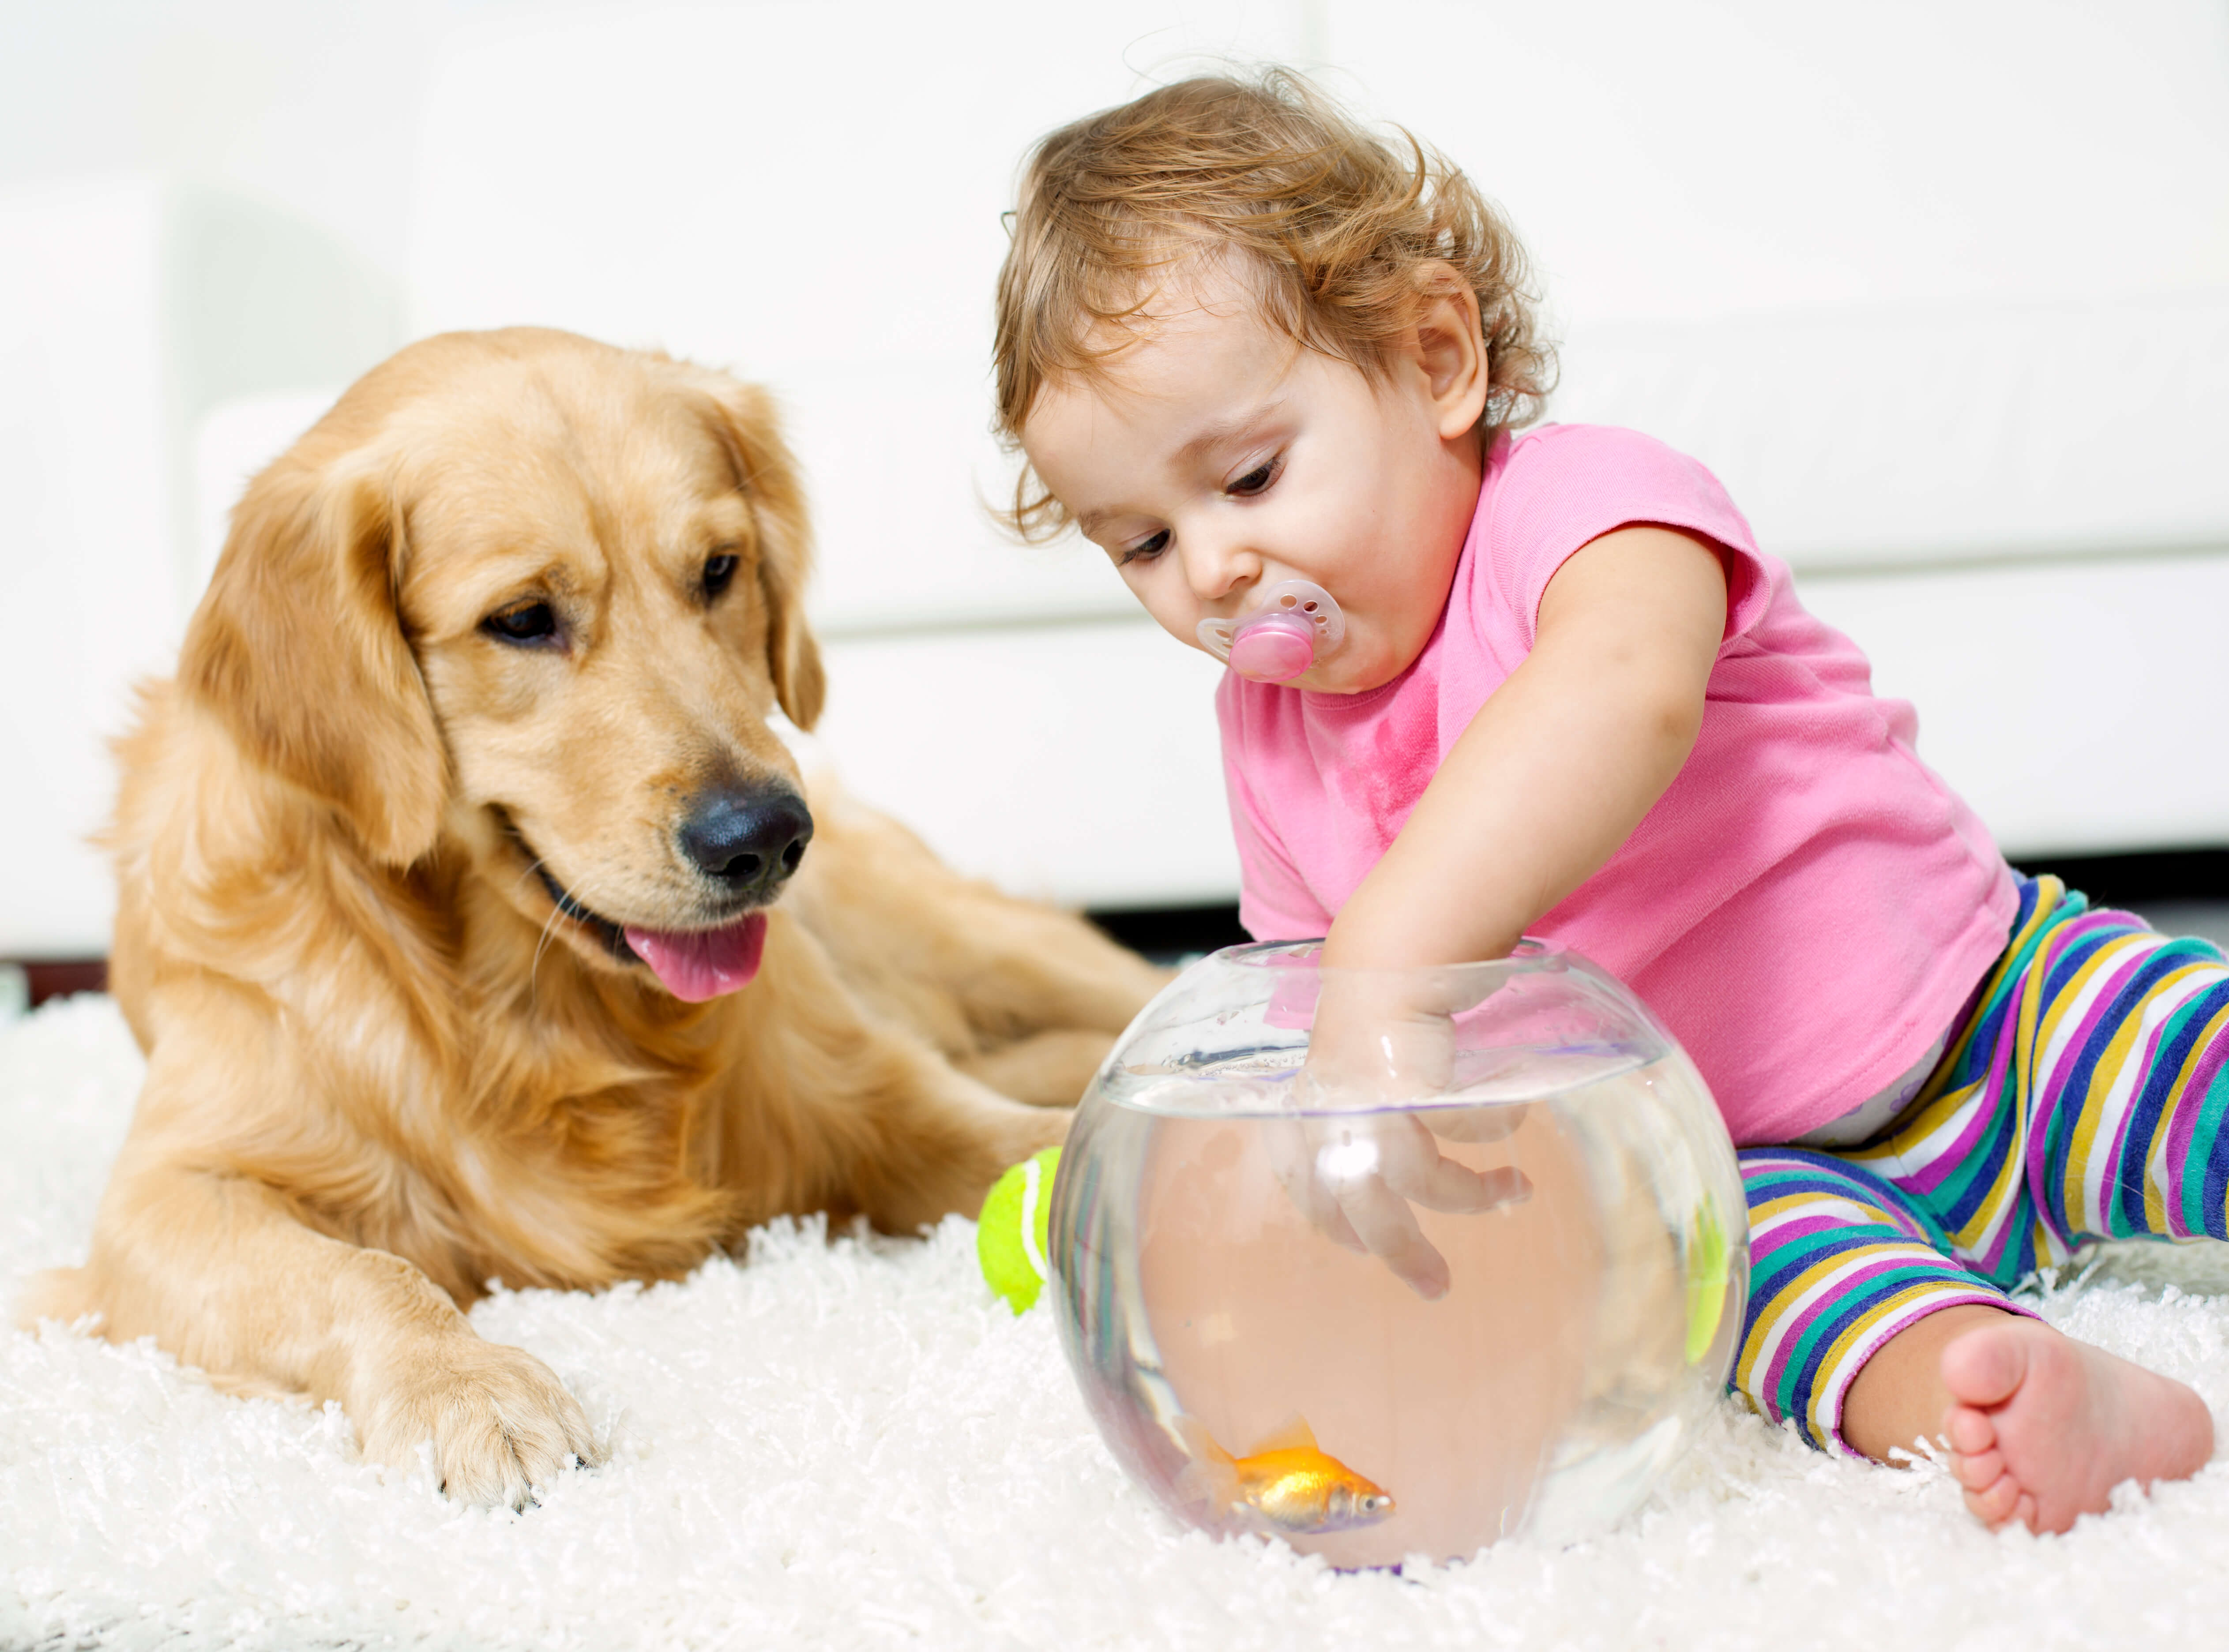 kid and pets playing on clean carpet